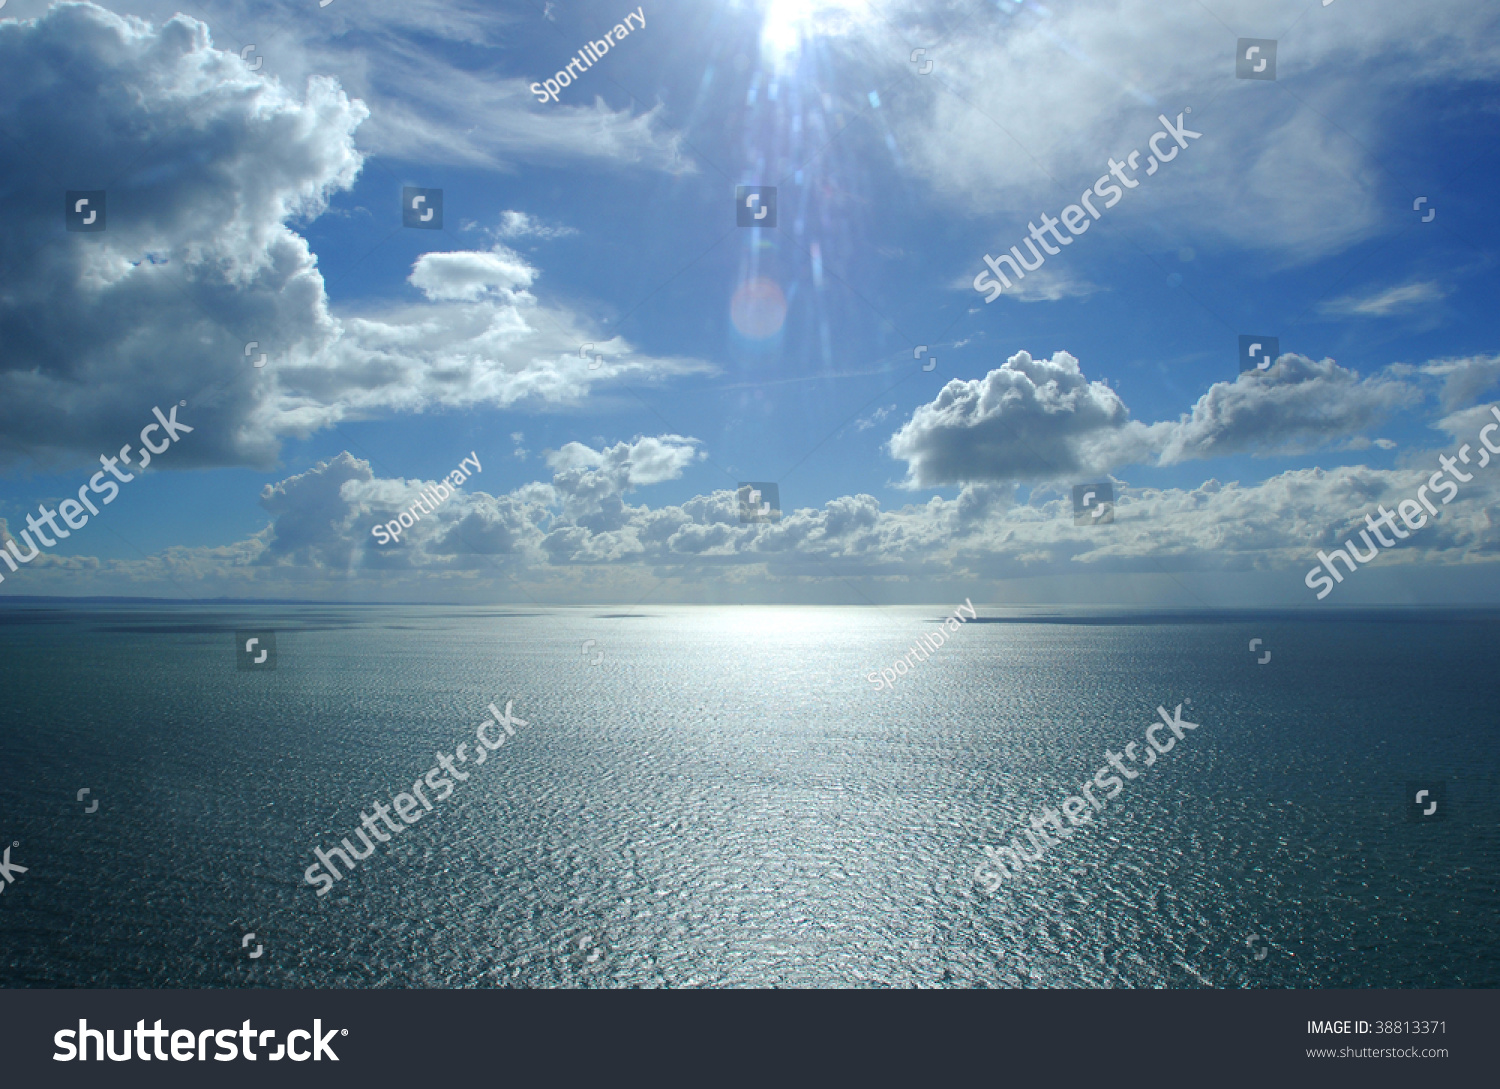 Aerial Photograph Helicopter Over Body Water Stock Photo ...